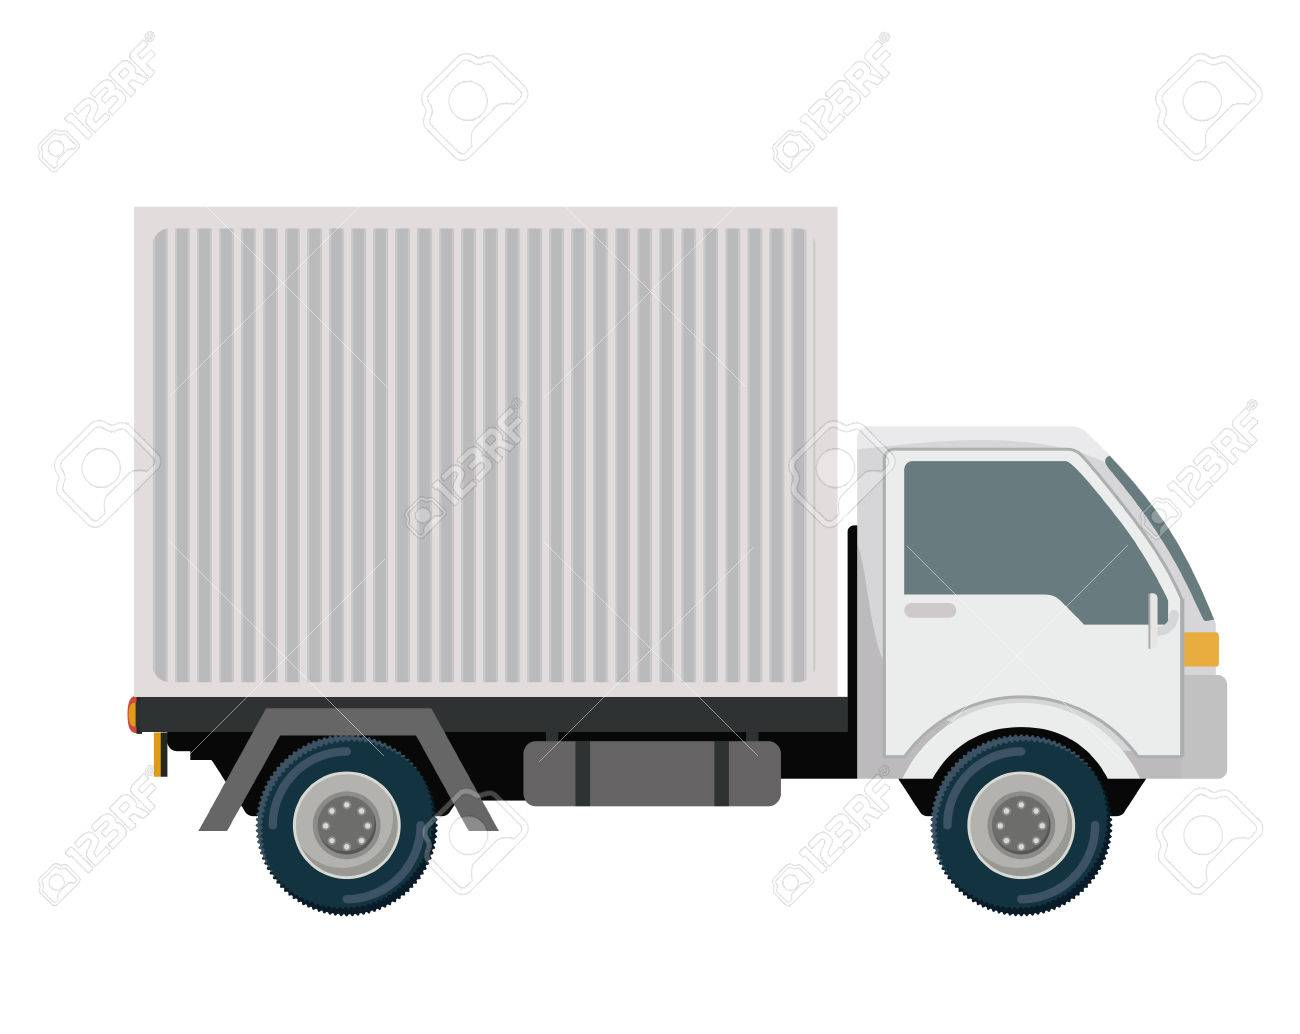 Logistics and delivery design over white background, vector illustration - 39167906